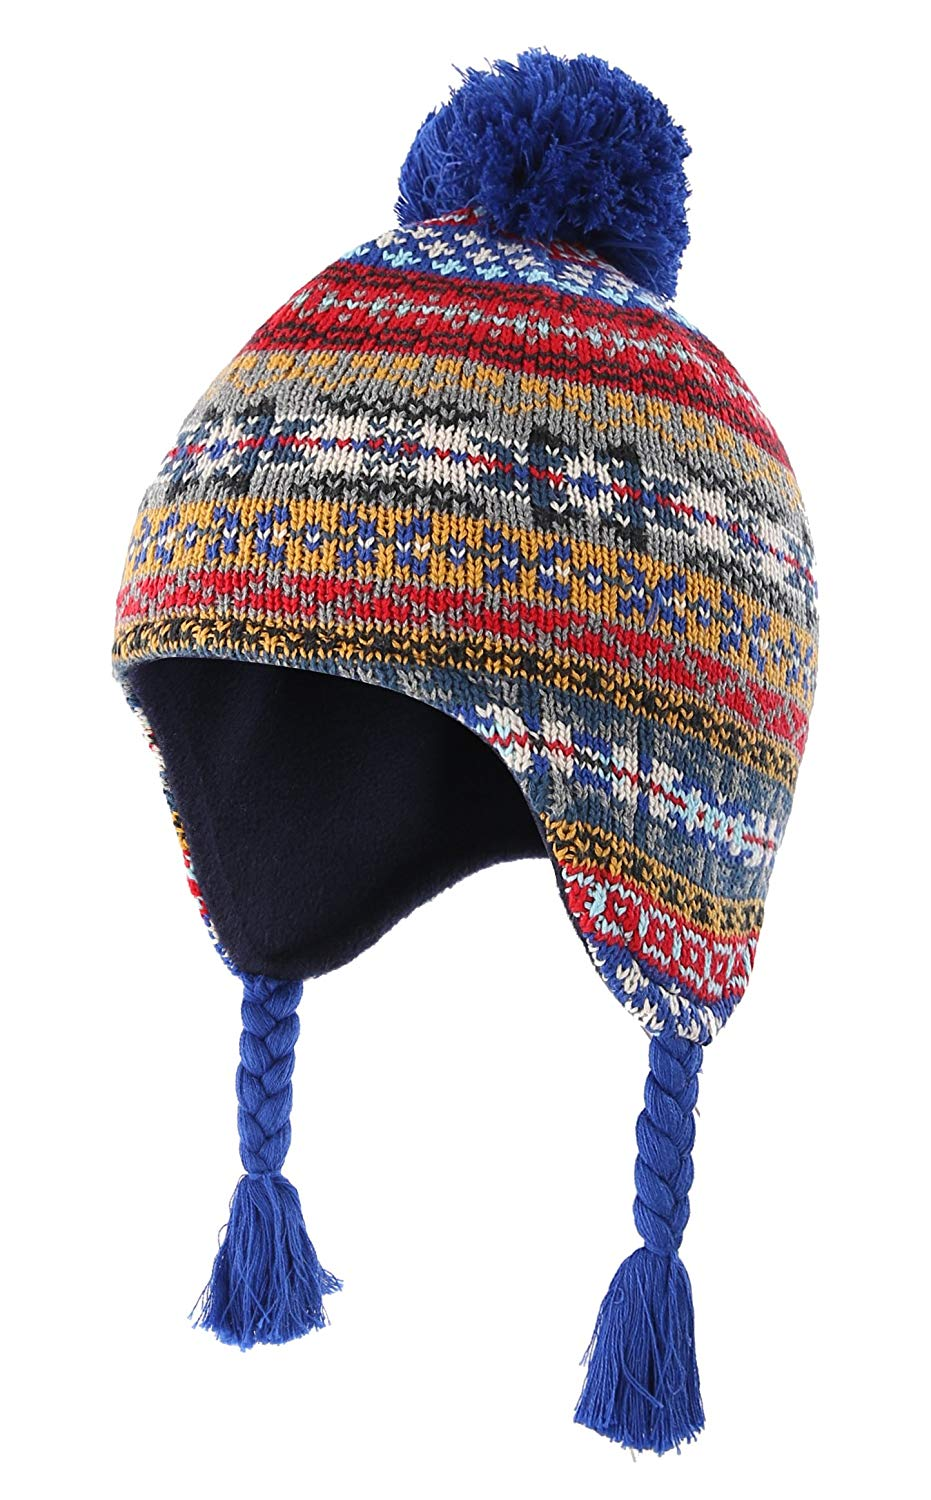 3e5ad81521f Get Quotations · Home Prefer Toddler Boys Winter Hats Cotton Fleece Knitted  Peruvian Earflaps Hat